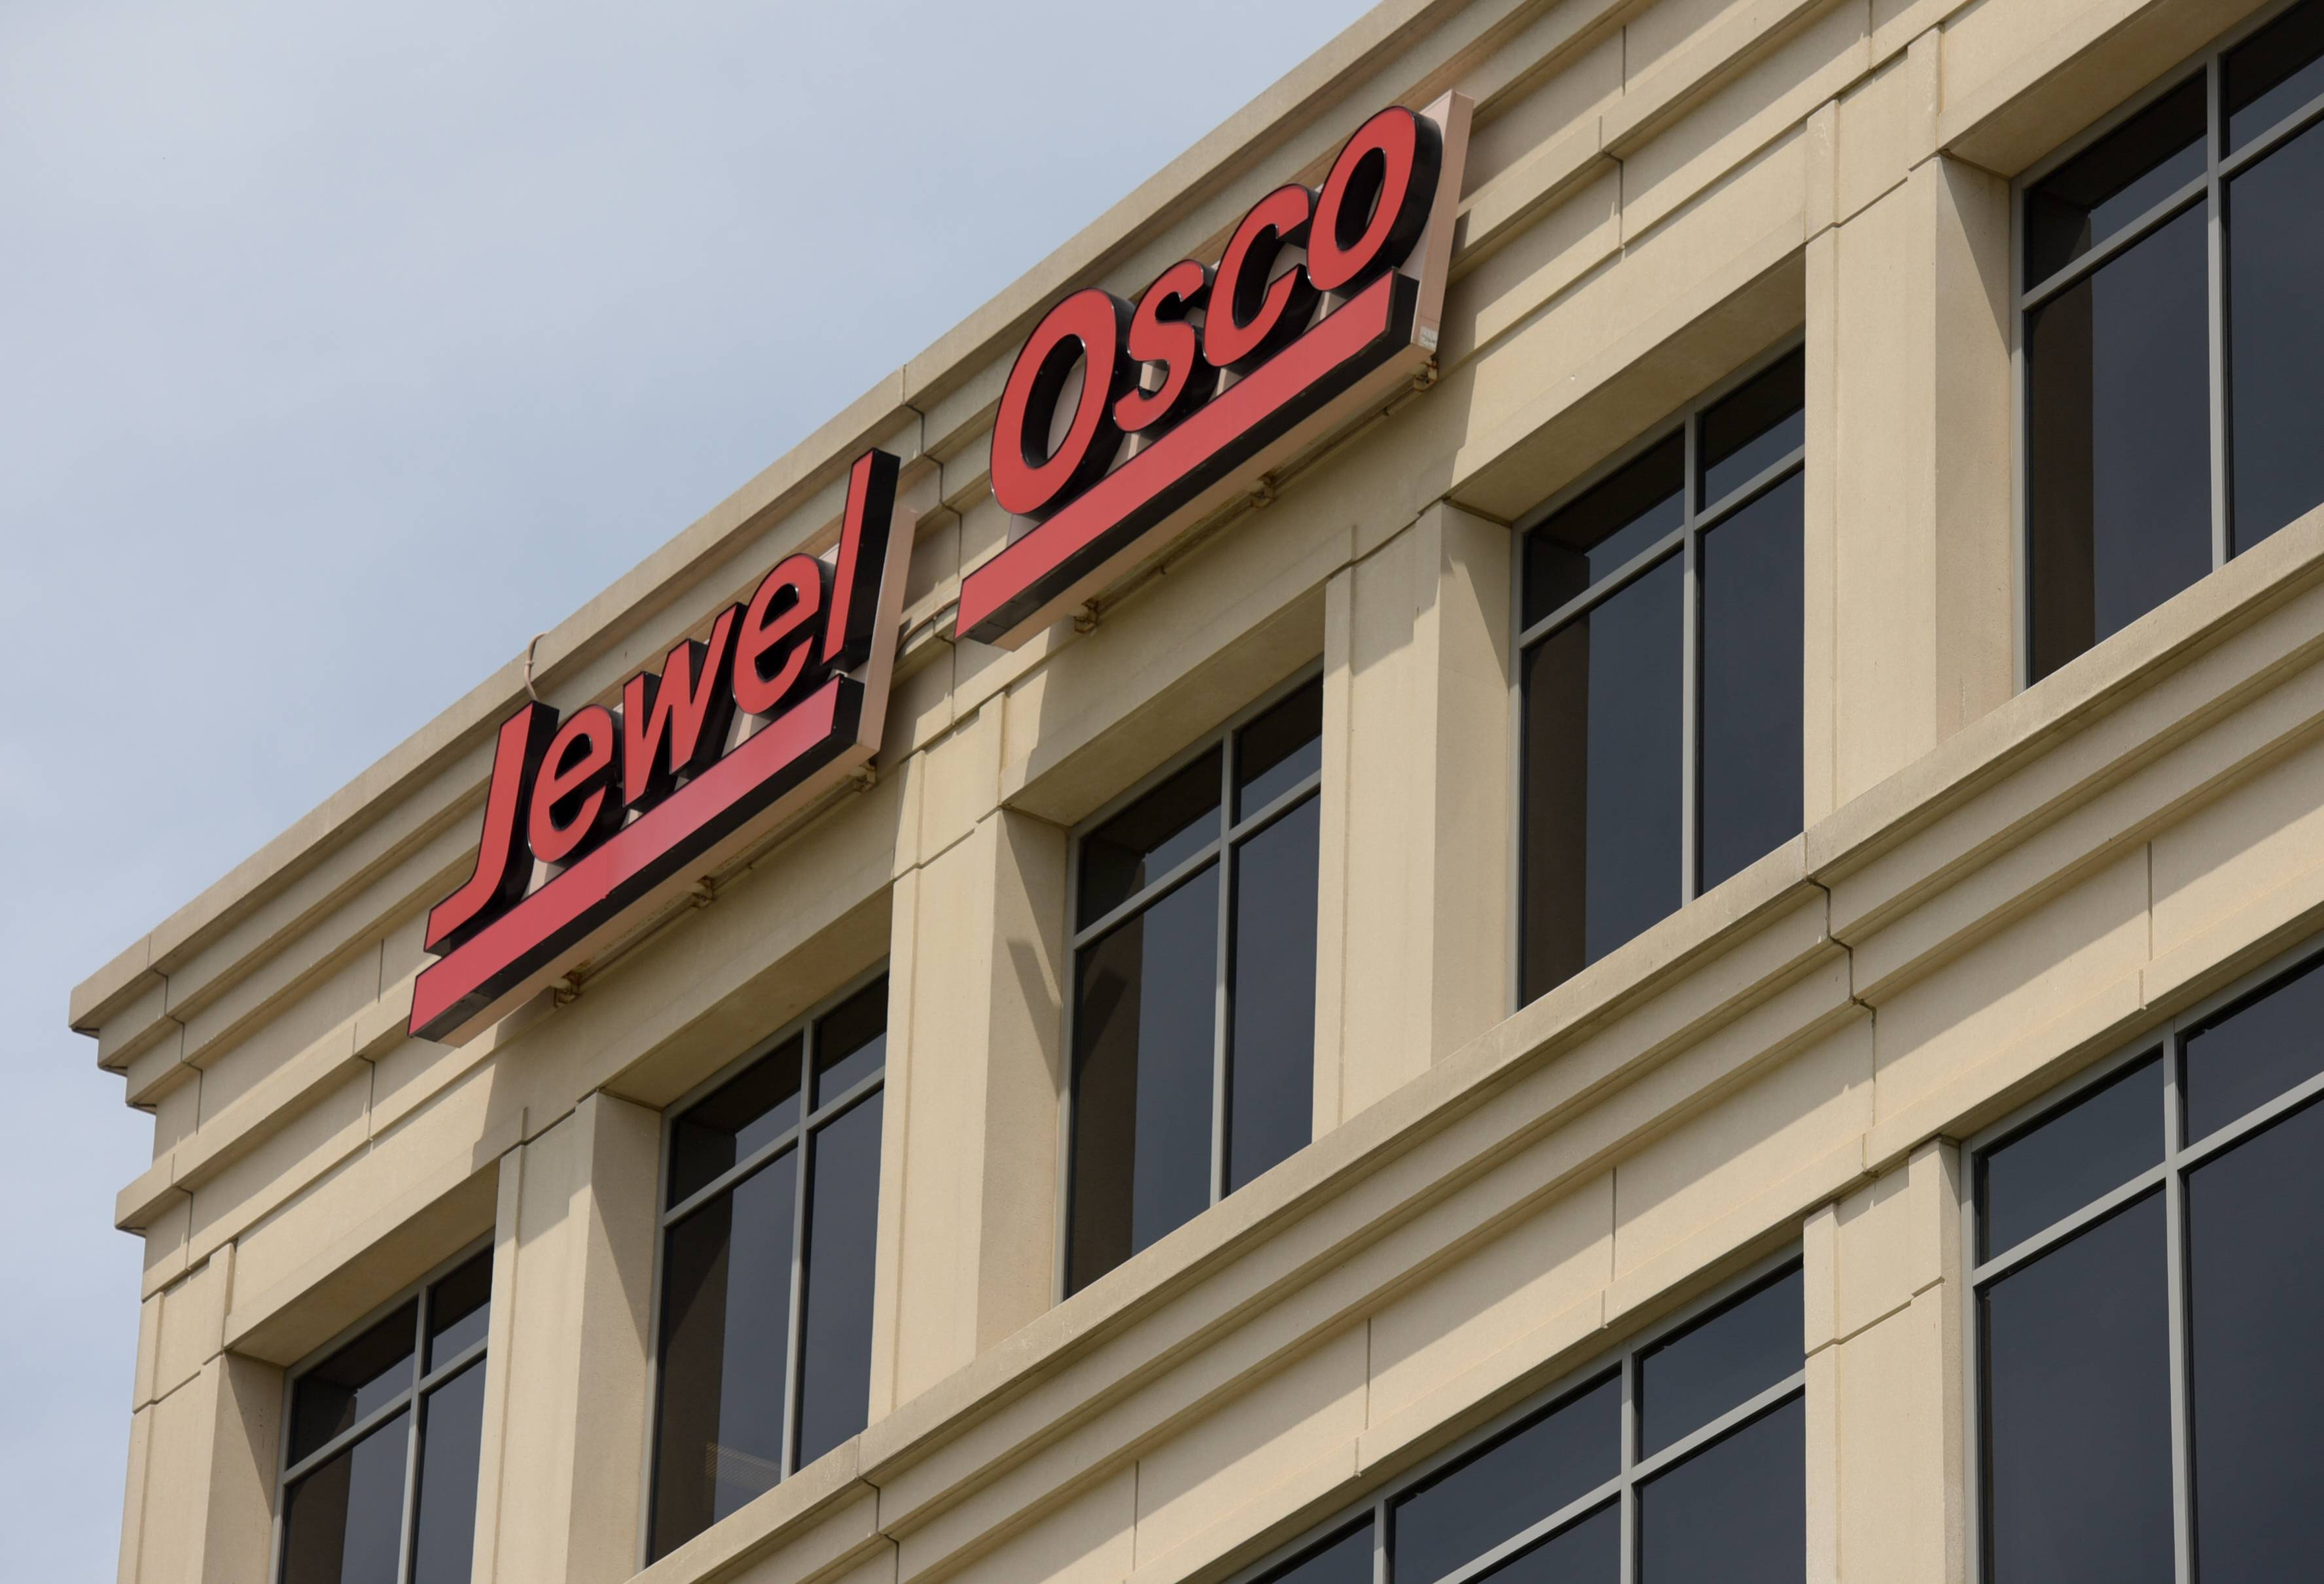 Itasca-based Jewel-Osco said it has agreed to acquire Strack & Van Til stores from Joliet-based Central Grocers, which filed bankruptcy.